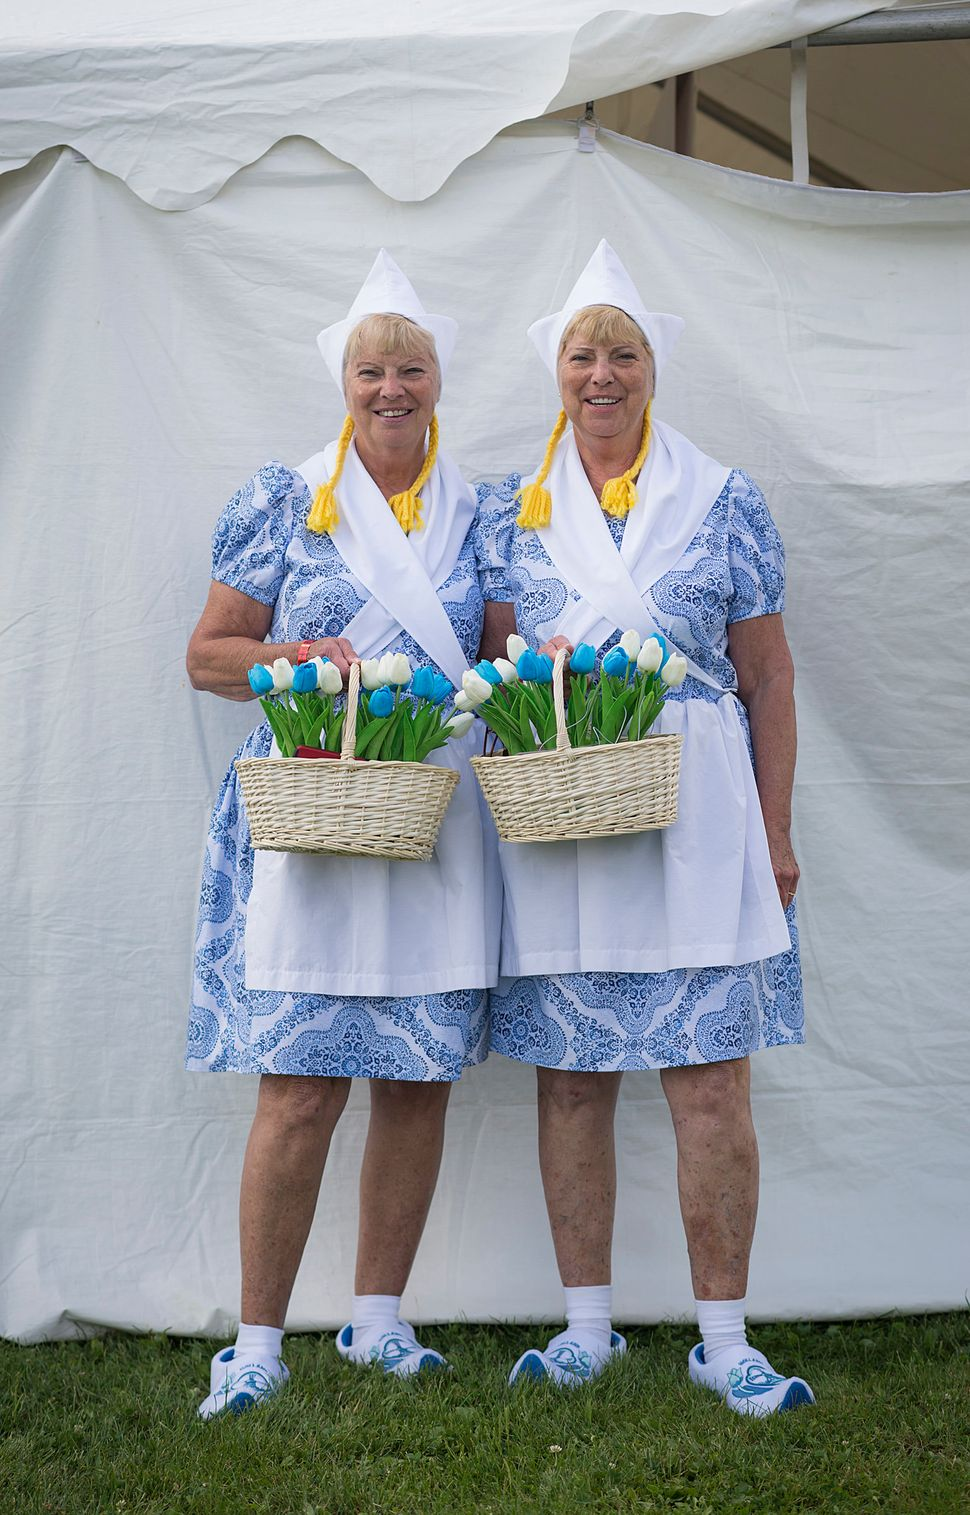 Diane (left) and Donna Perrck embrace their Dutch ancestry.